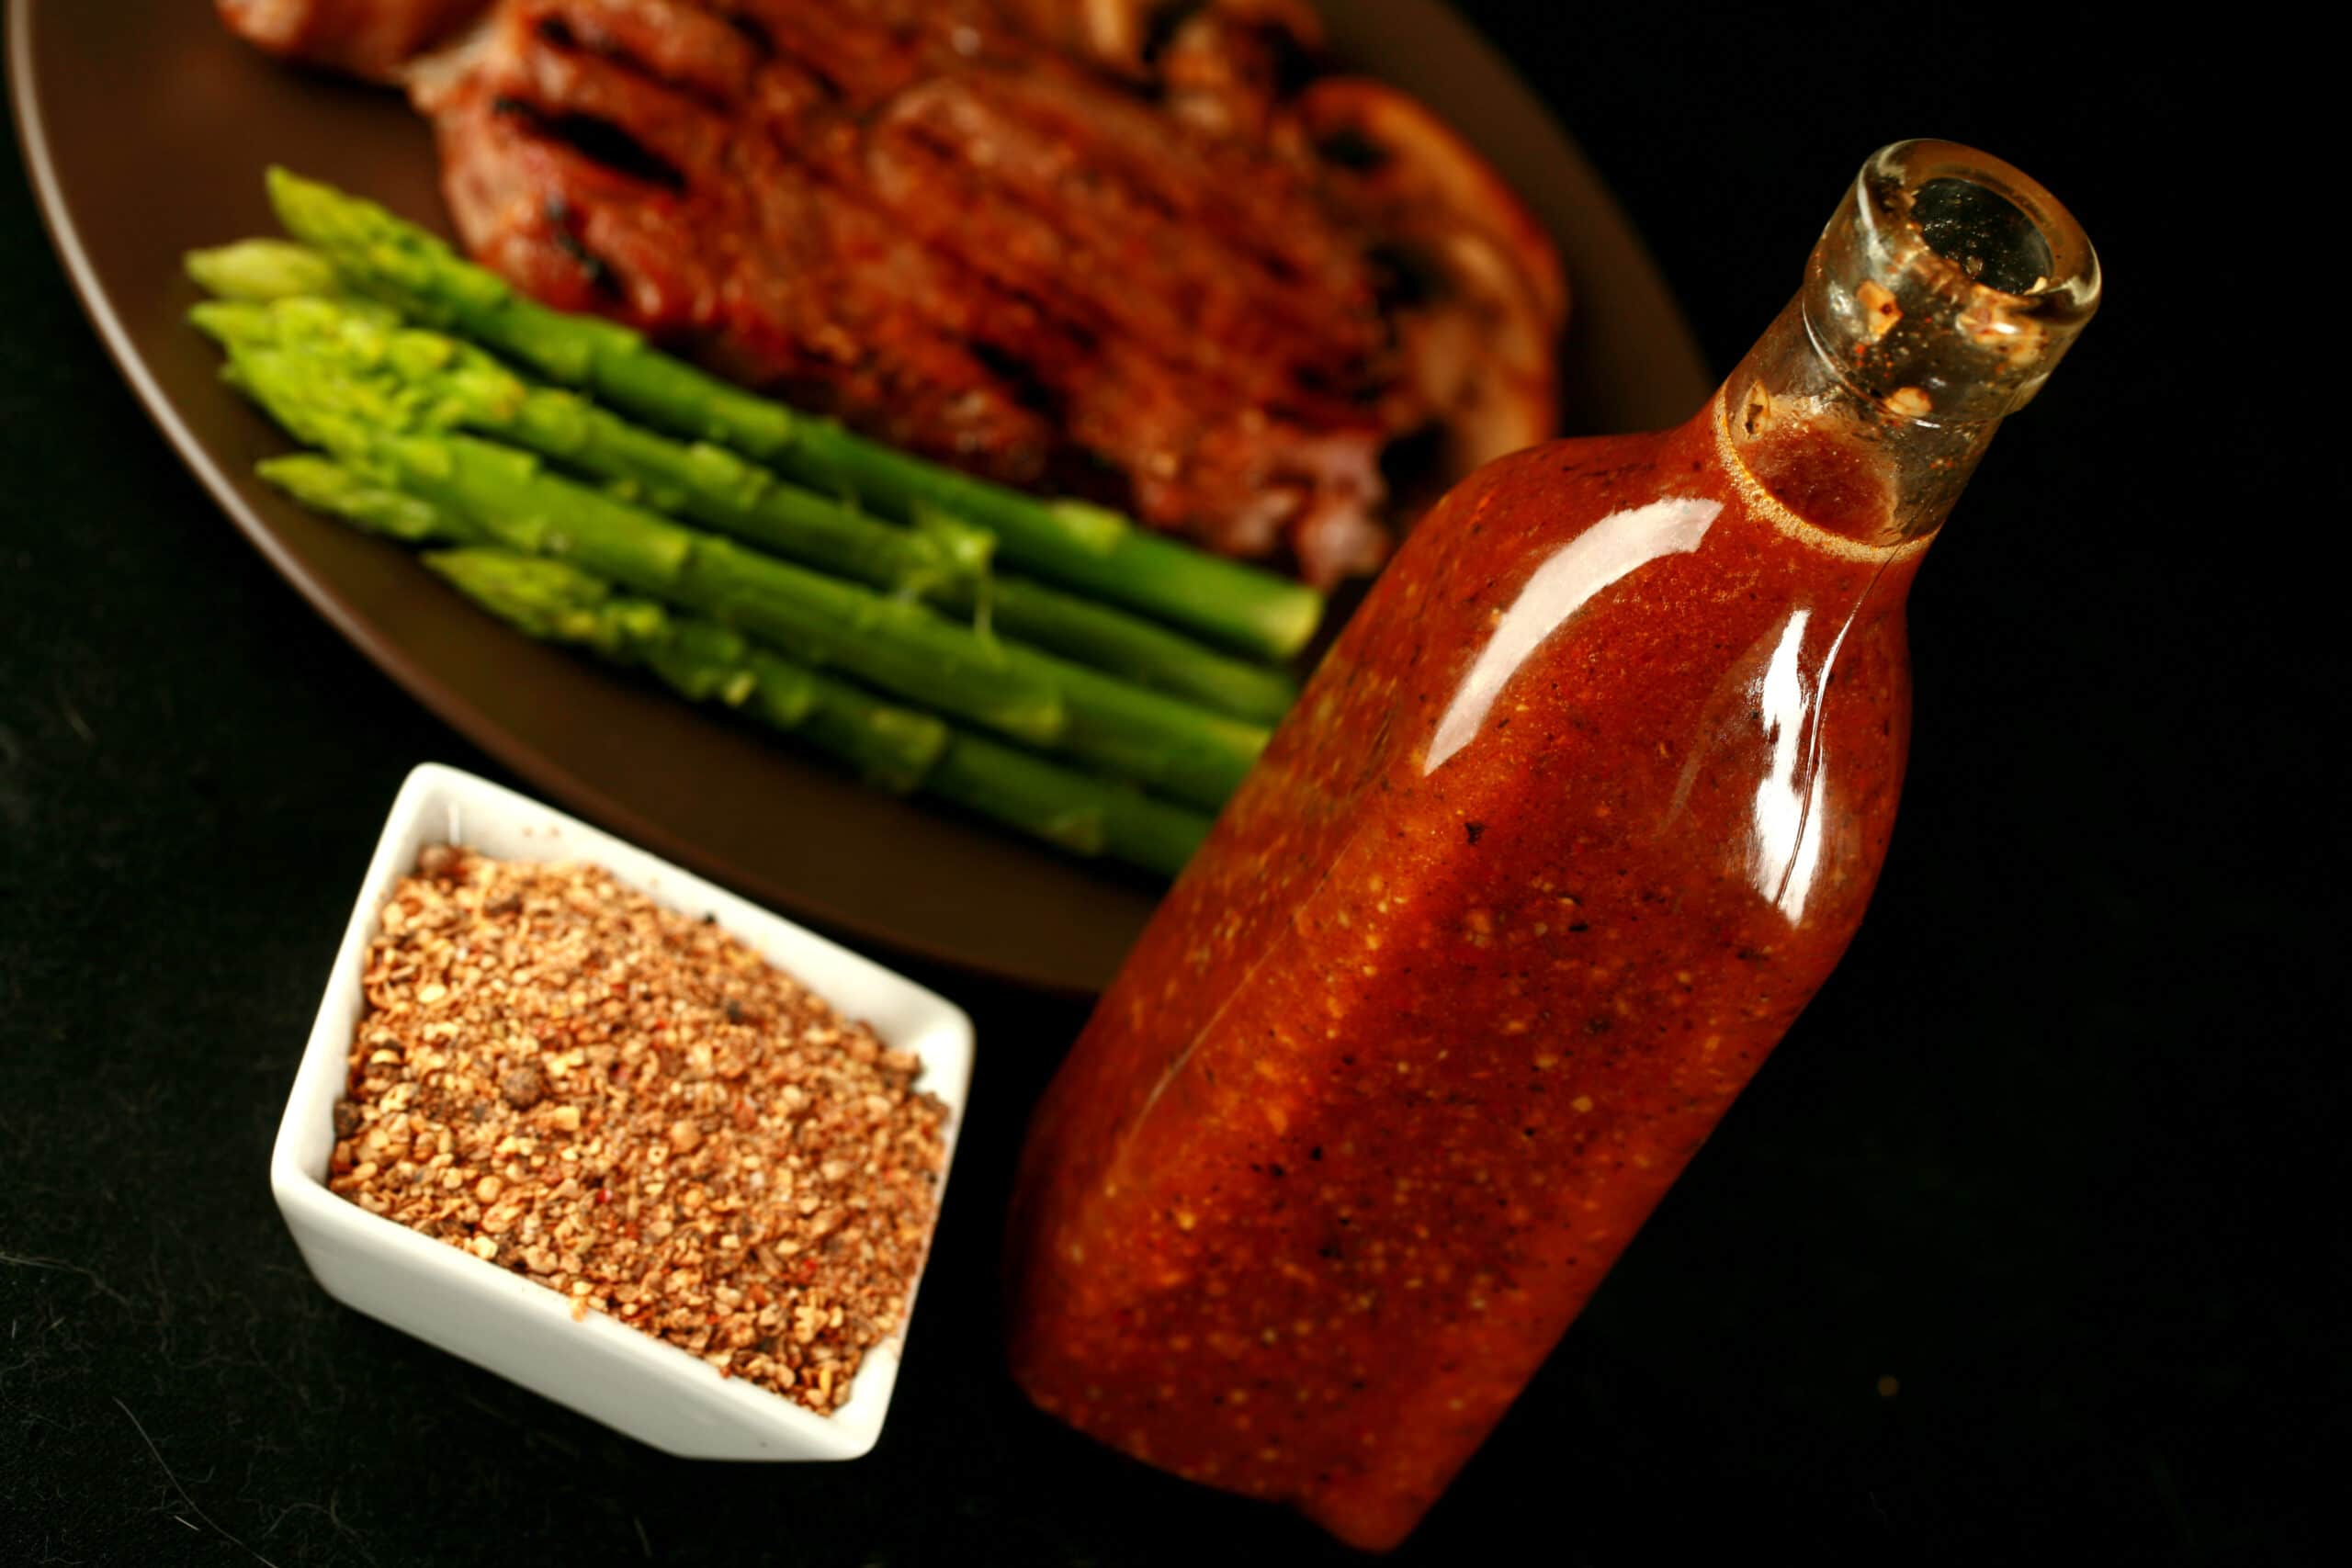 Montreal steak spice in a small square bowl, and marinade in a glass bottle. Behind them, a steak with sauteed mushrooms and asparagus on a plate.